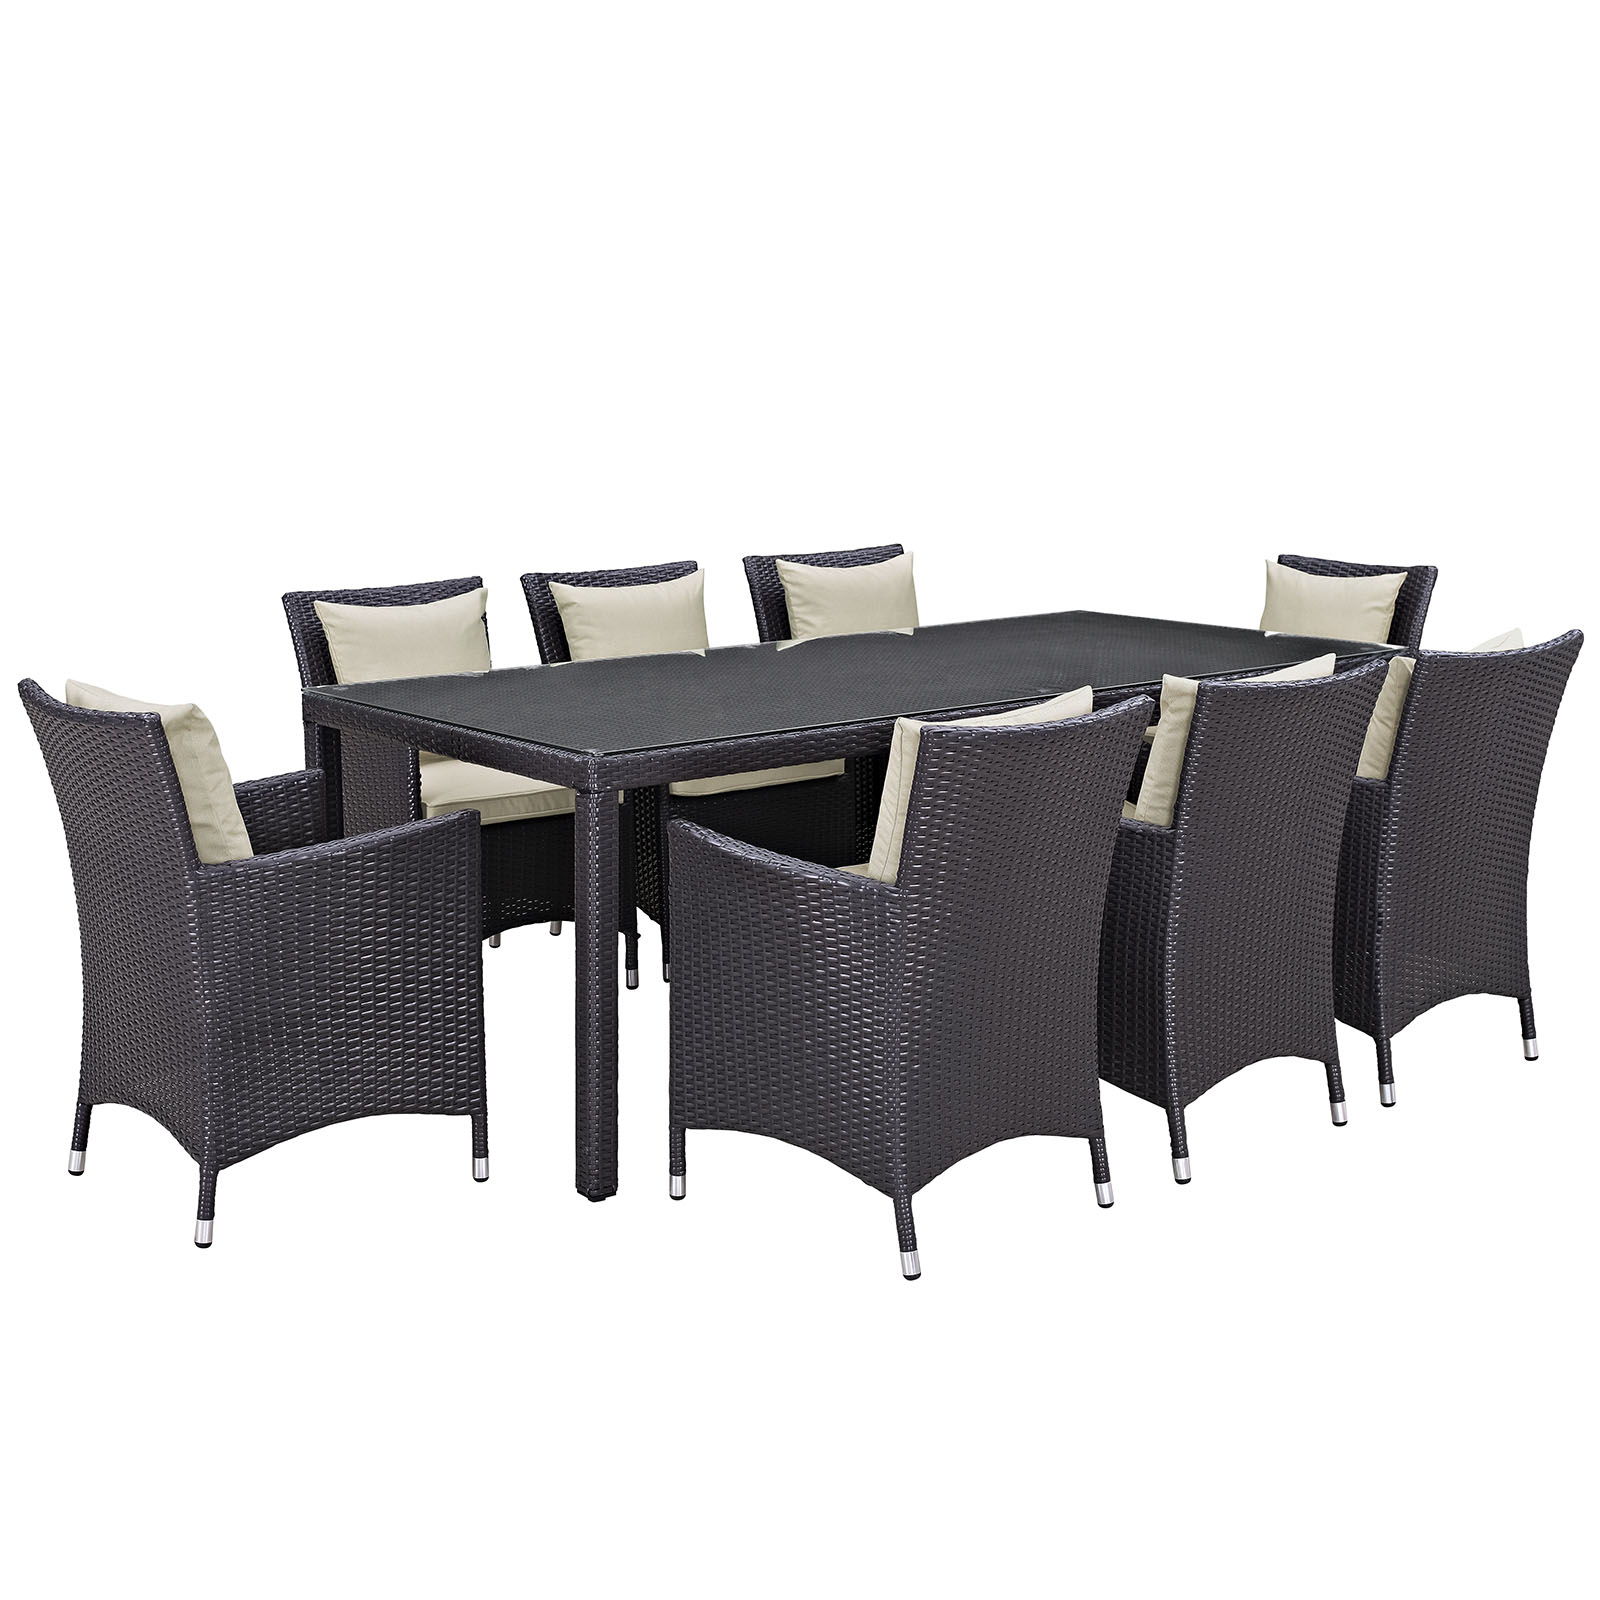 Modern Contemporary Urban Design Outdoor Patio Balcony Nine PCS Dining Chairs and Table Set, Beige, Rattan